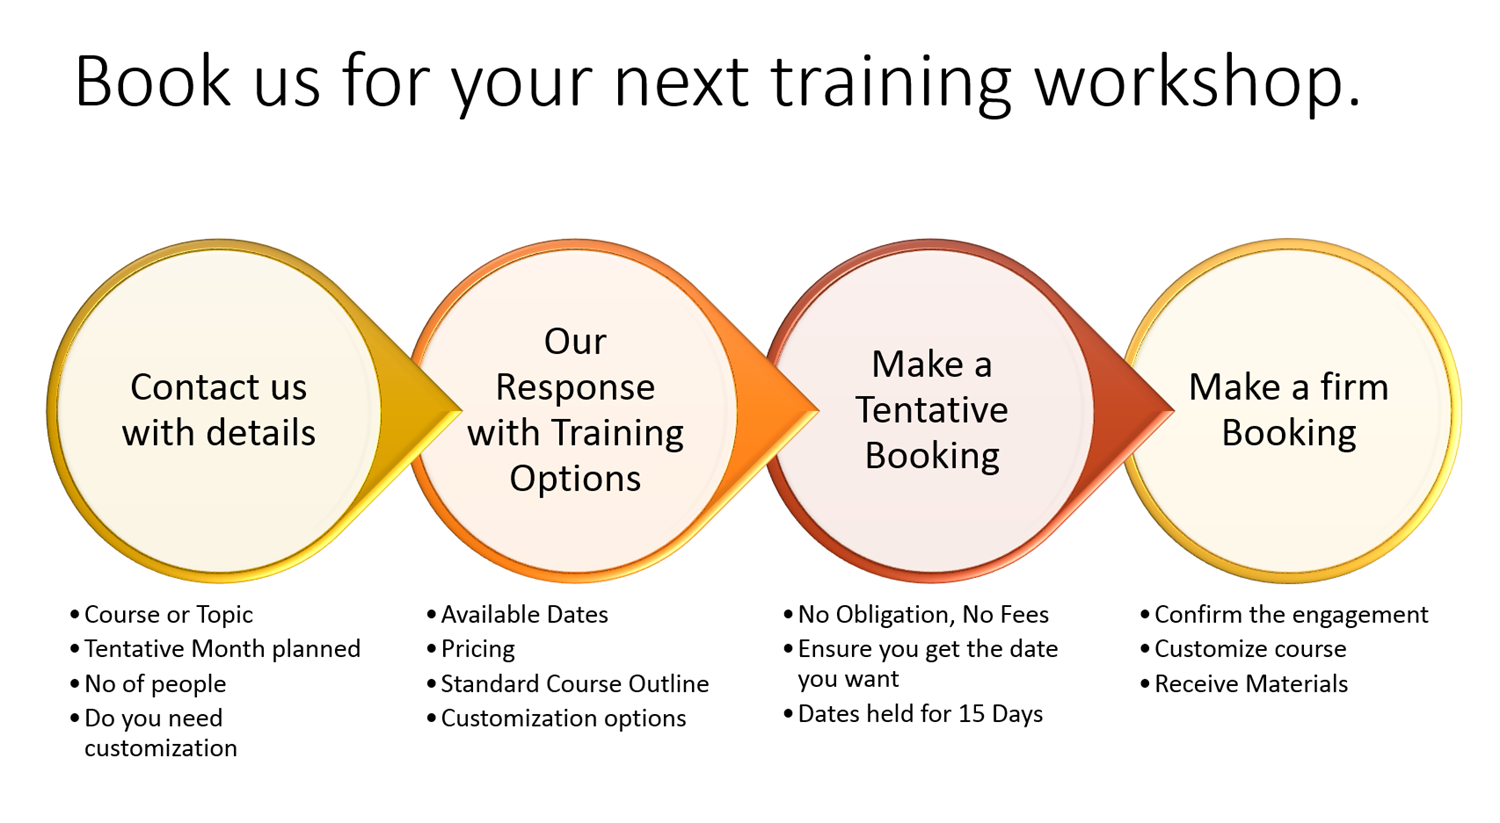 On site training hands on training in excel word powerpoint we have a very simple process that takes all the hassle out of customizing and booking a workshop 1betcityfo Gallery